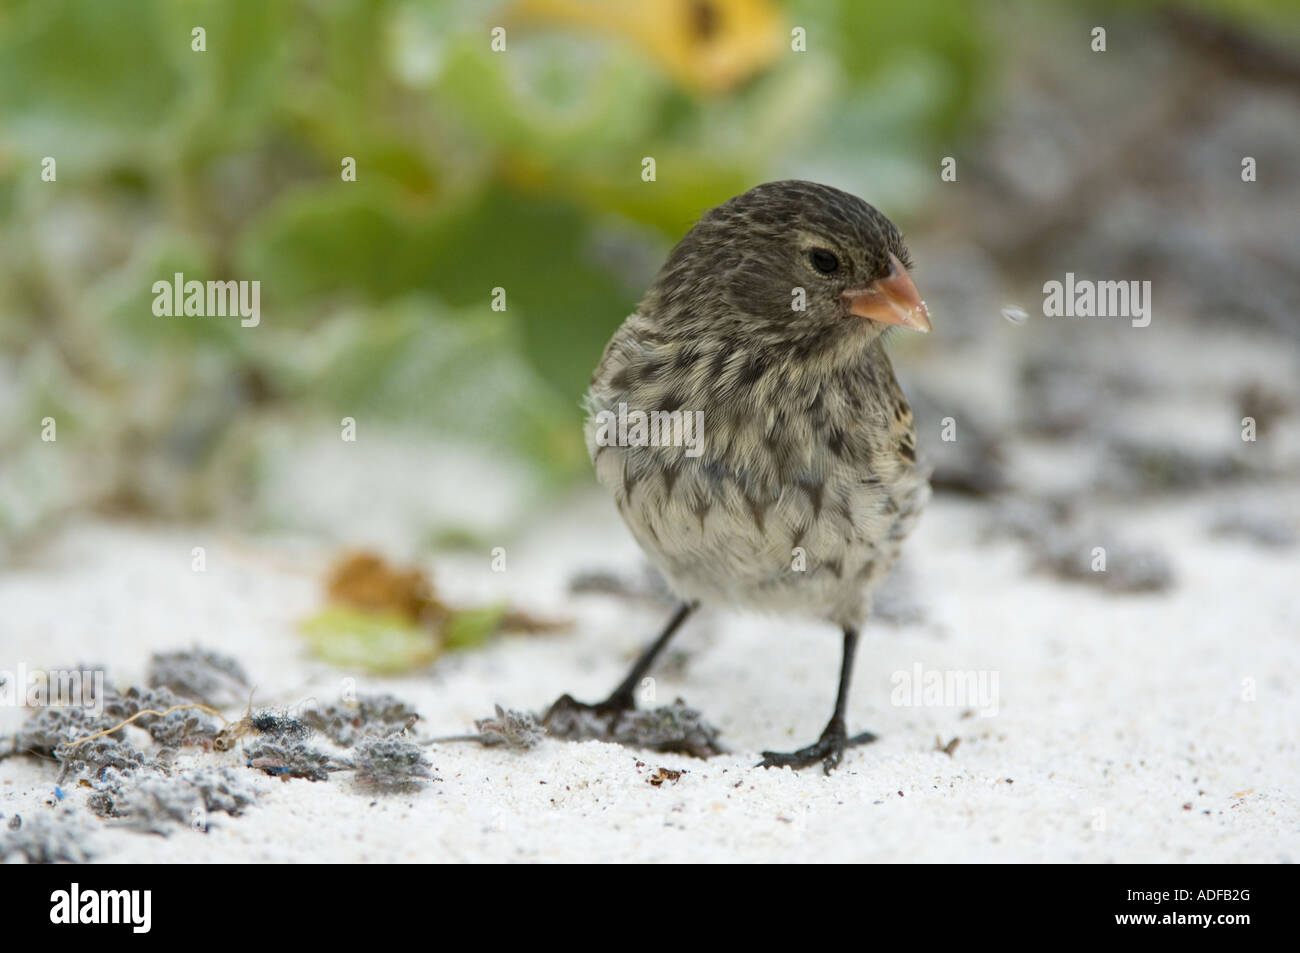 Immature Small-billed Ground Finch (Geospiza fuliginosa) searching for food in sand, Gardner Bay (Bahia) Espanola - Stock Image